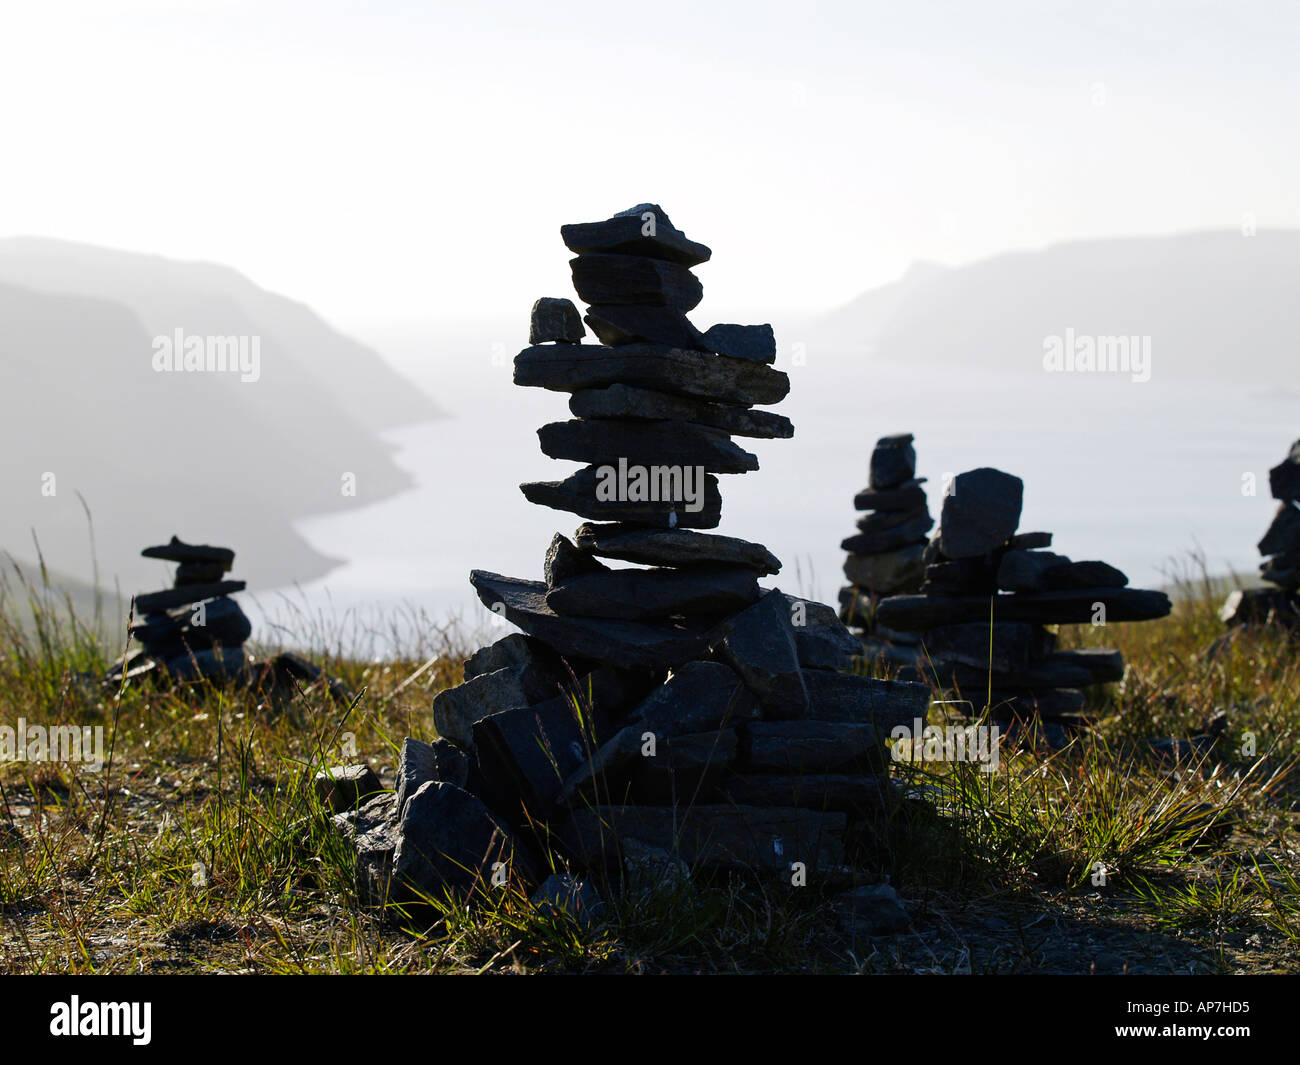 norwegian stone sculptures - Stock Image